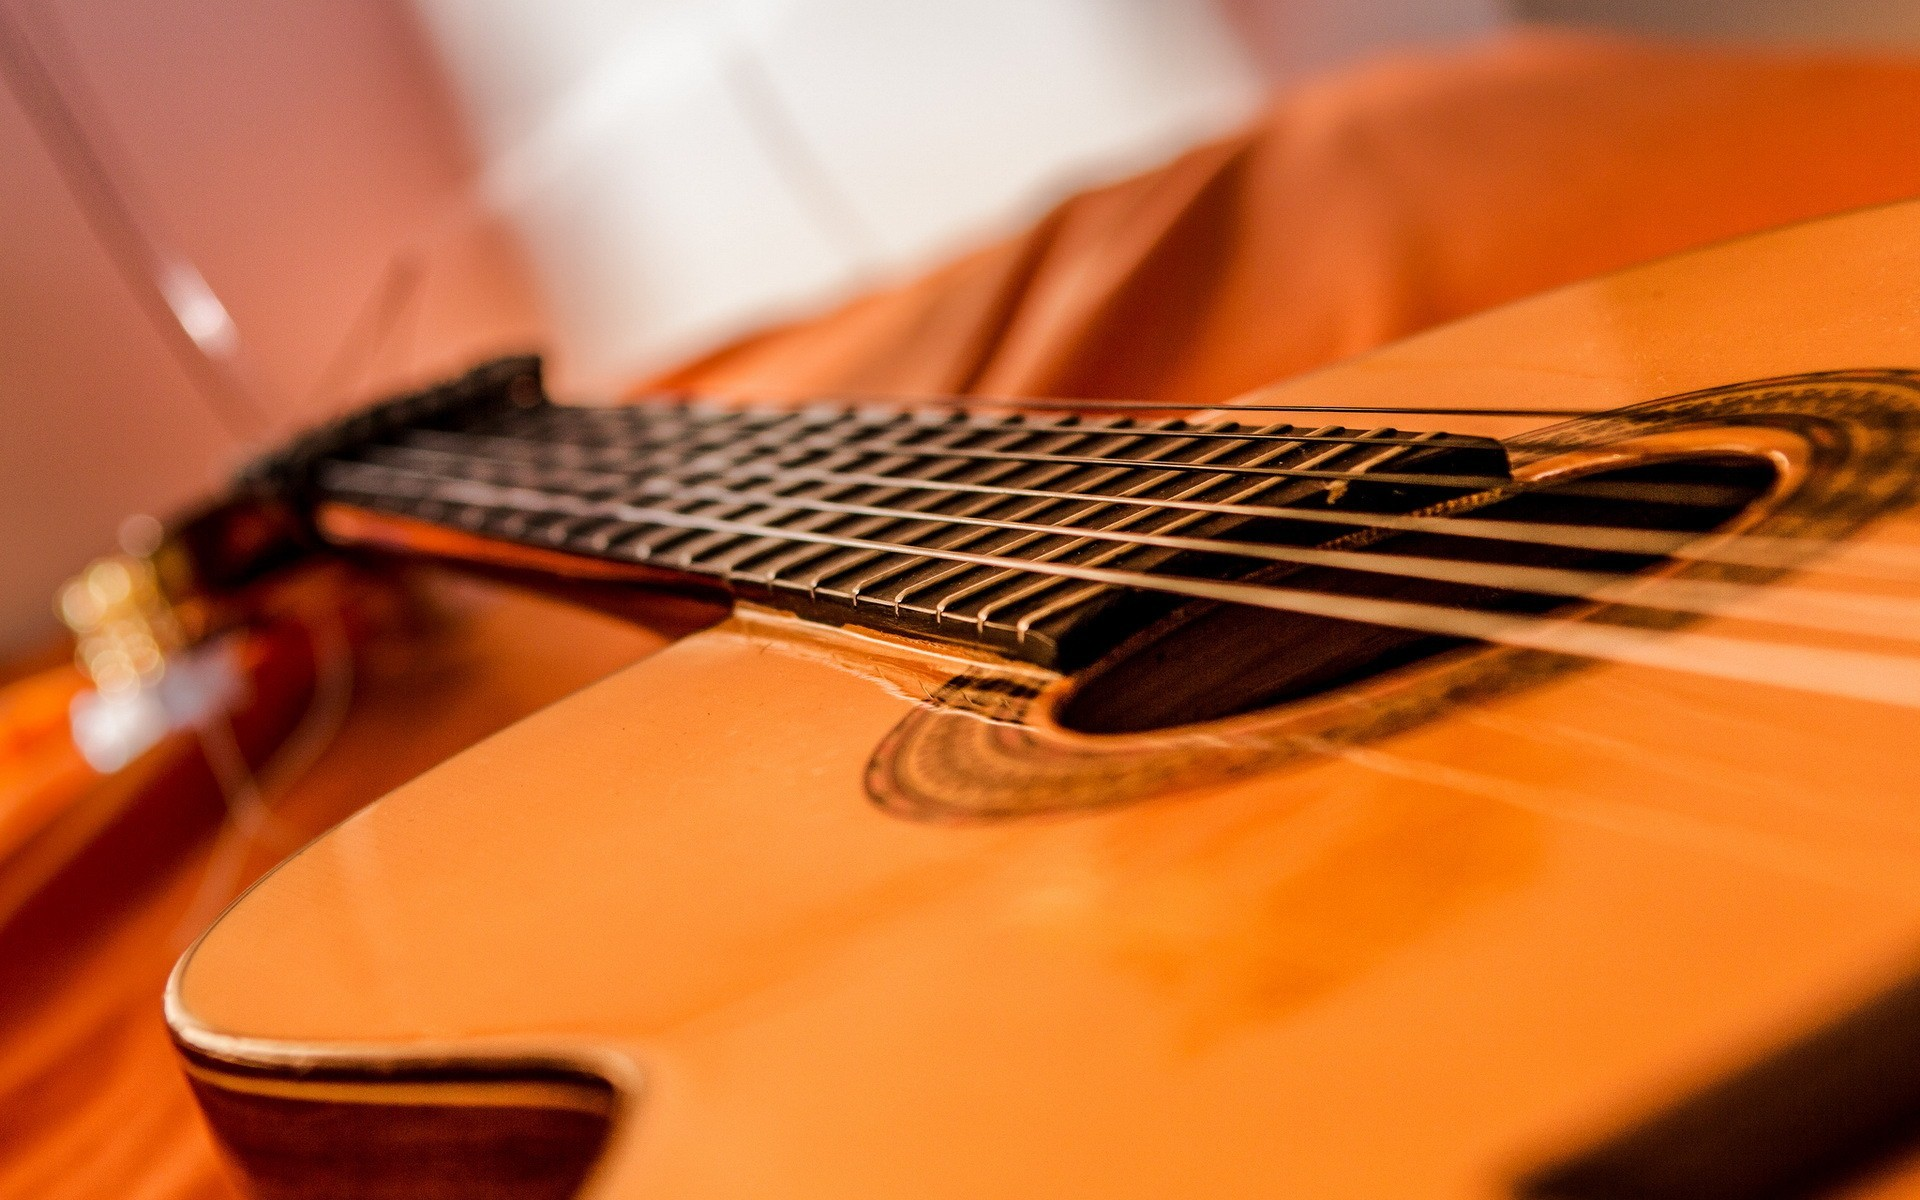 Music Acoustic Guitar Wallpaper Hd Wallpapers High Background Guitar Hd 1920x1200 Wallpaper Teahub Io